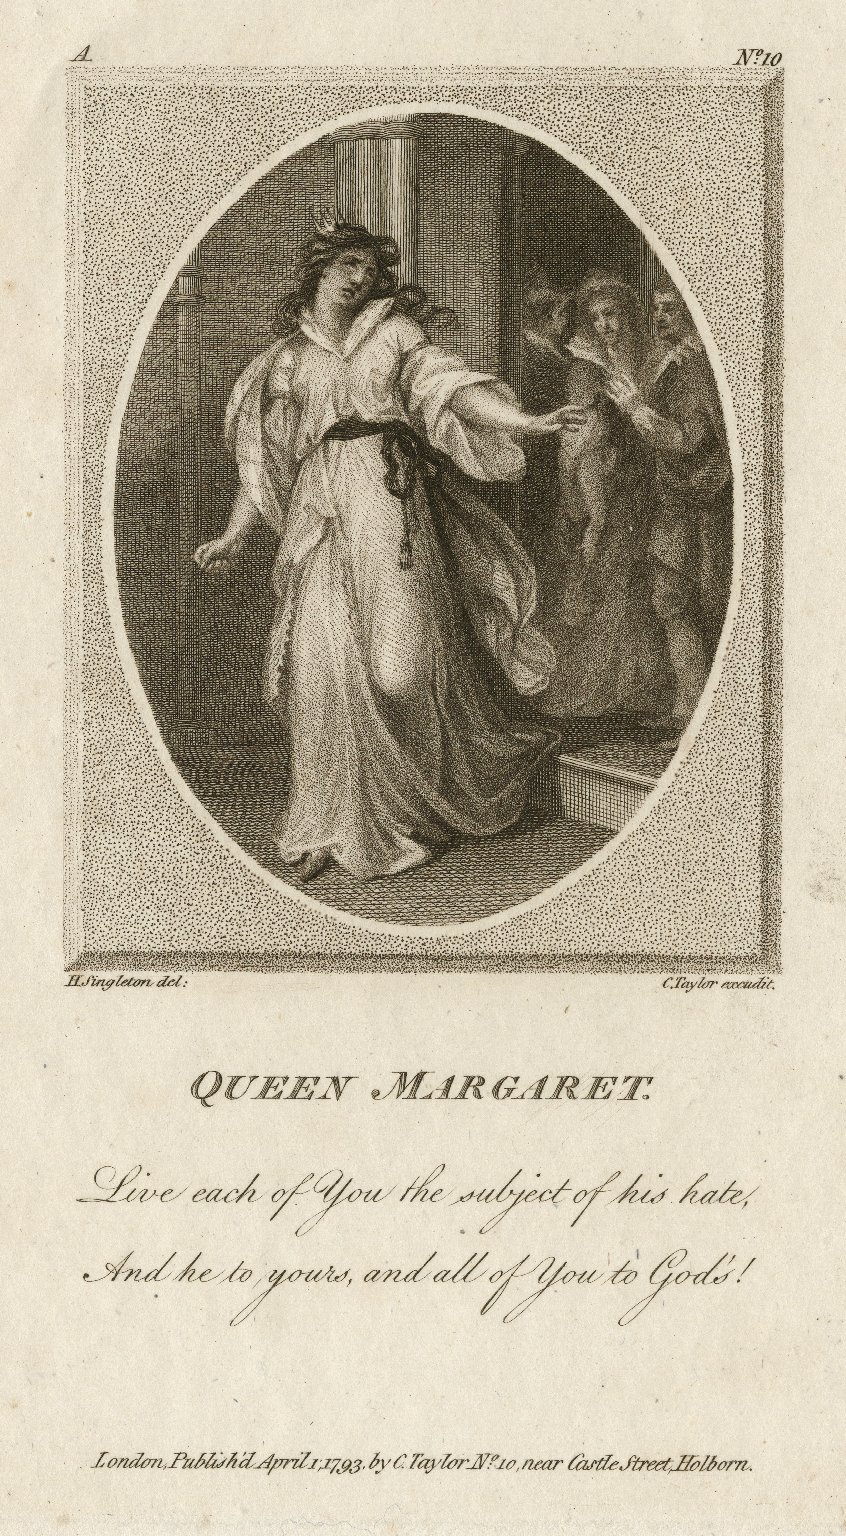 Queen Margaret: Live each of you the subject of his hate, and he to yours, and all of you to God's! [King Henry VI, pt. 3, character in the play] [graphic] / H. Singleton's del ; C. Taylor excudit.